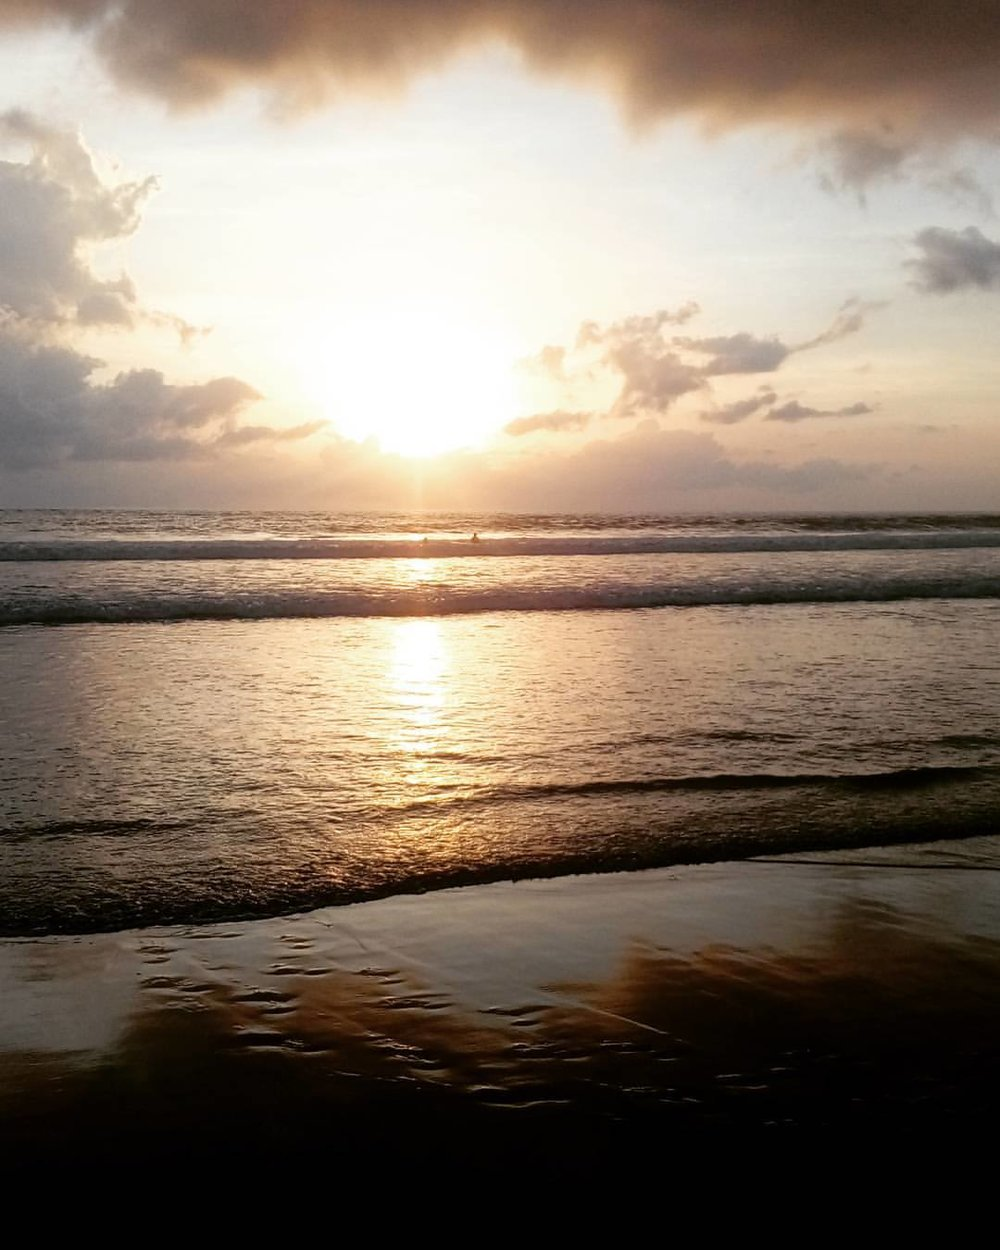 Double_Six_Beach_Sunset_Bali.jpg